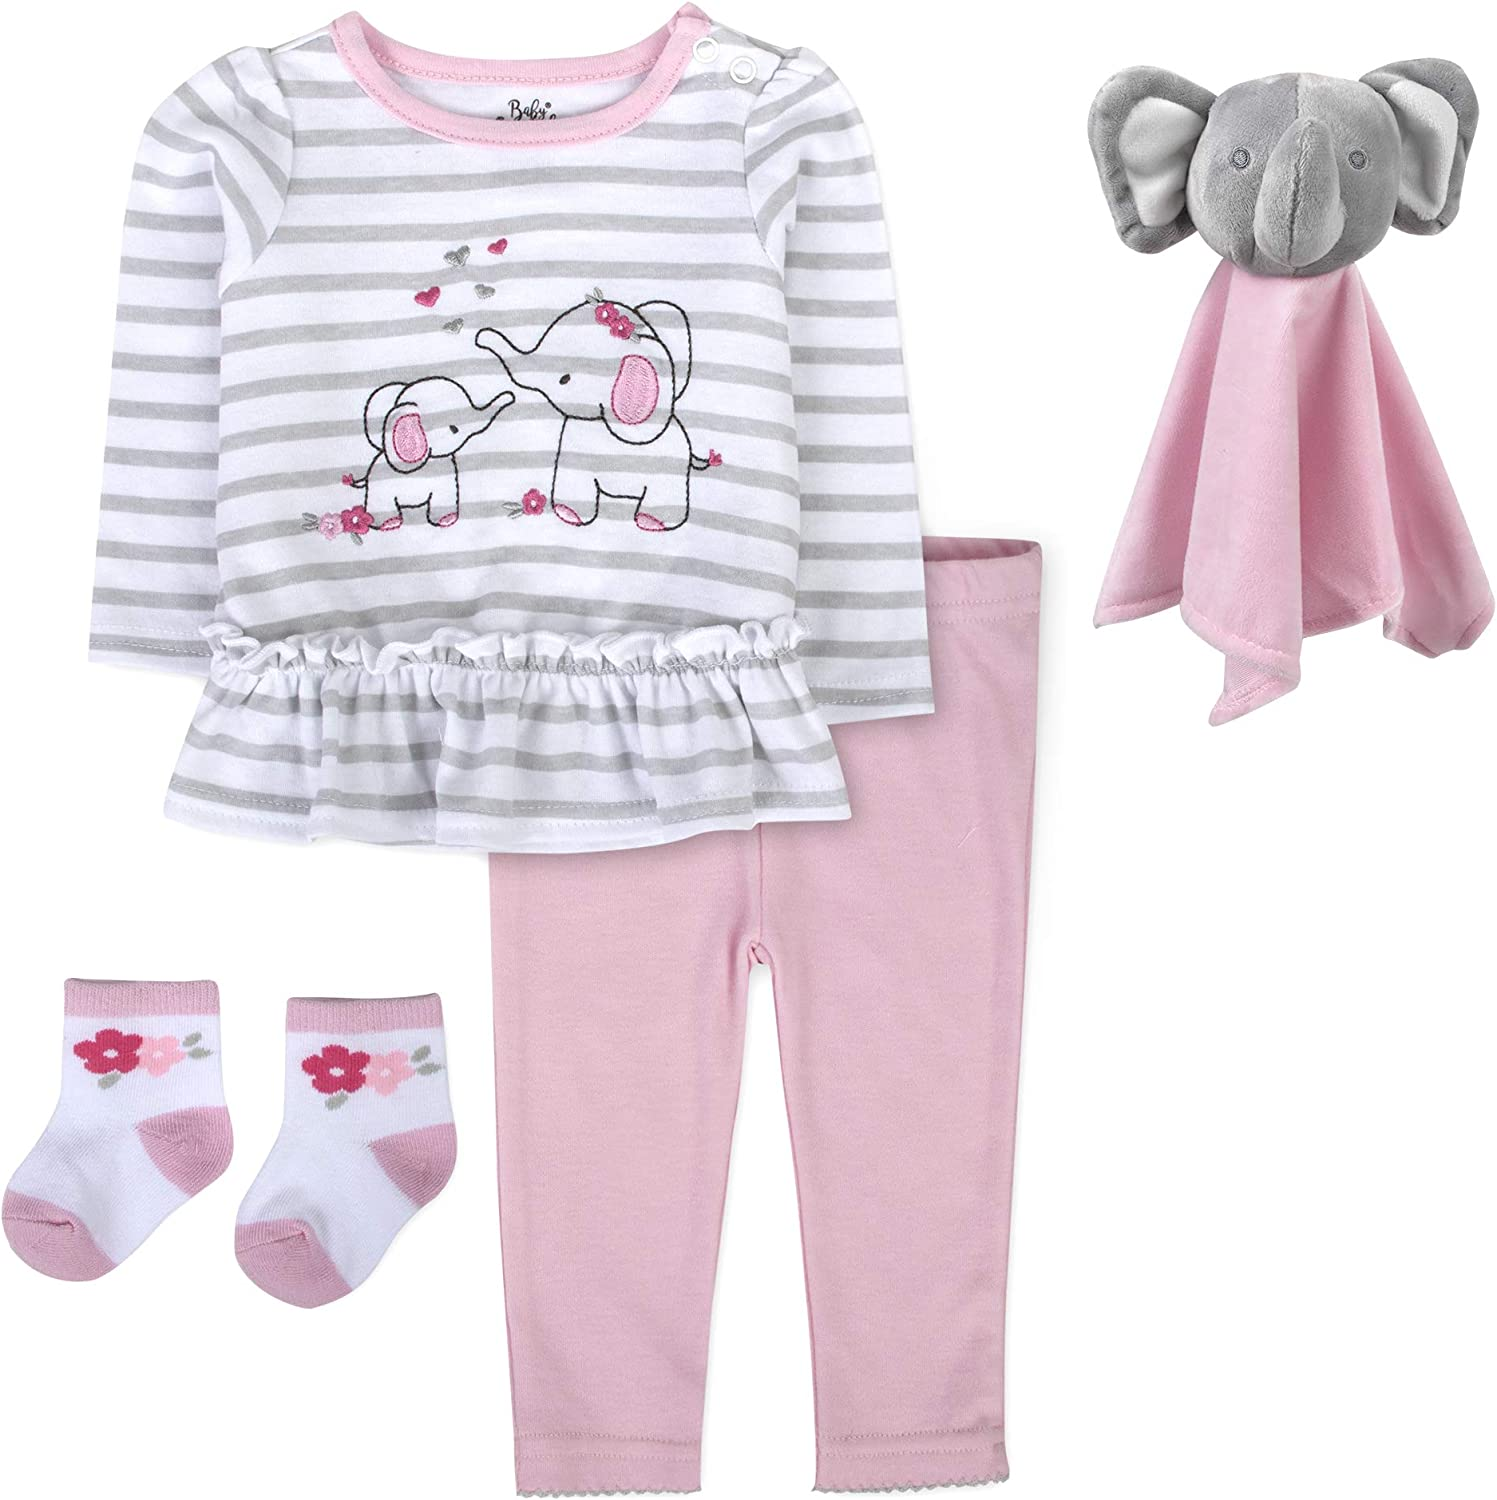 Take Me Home Outfit Baby Girl with Lovey Security Blanket, Baby Girl Shirt, Pants, Socks, 4 Pc Set 3-9 Months